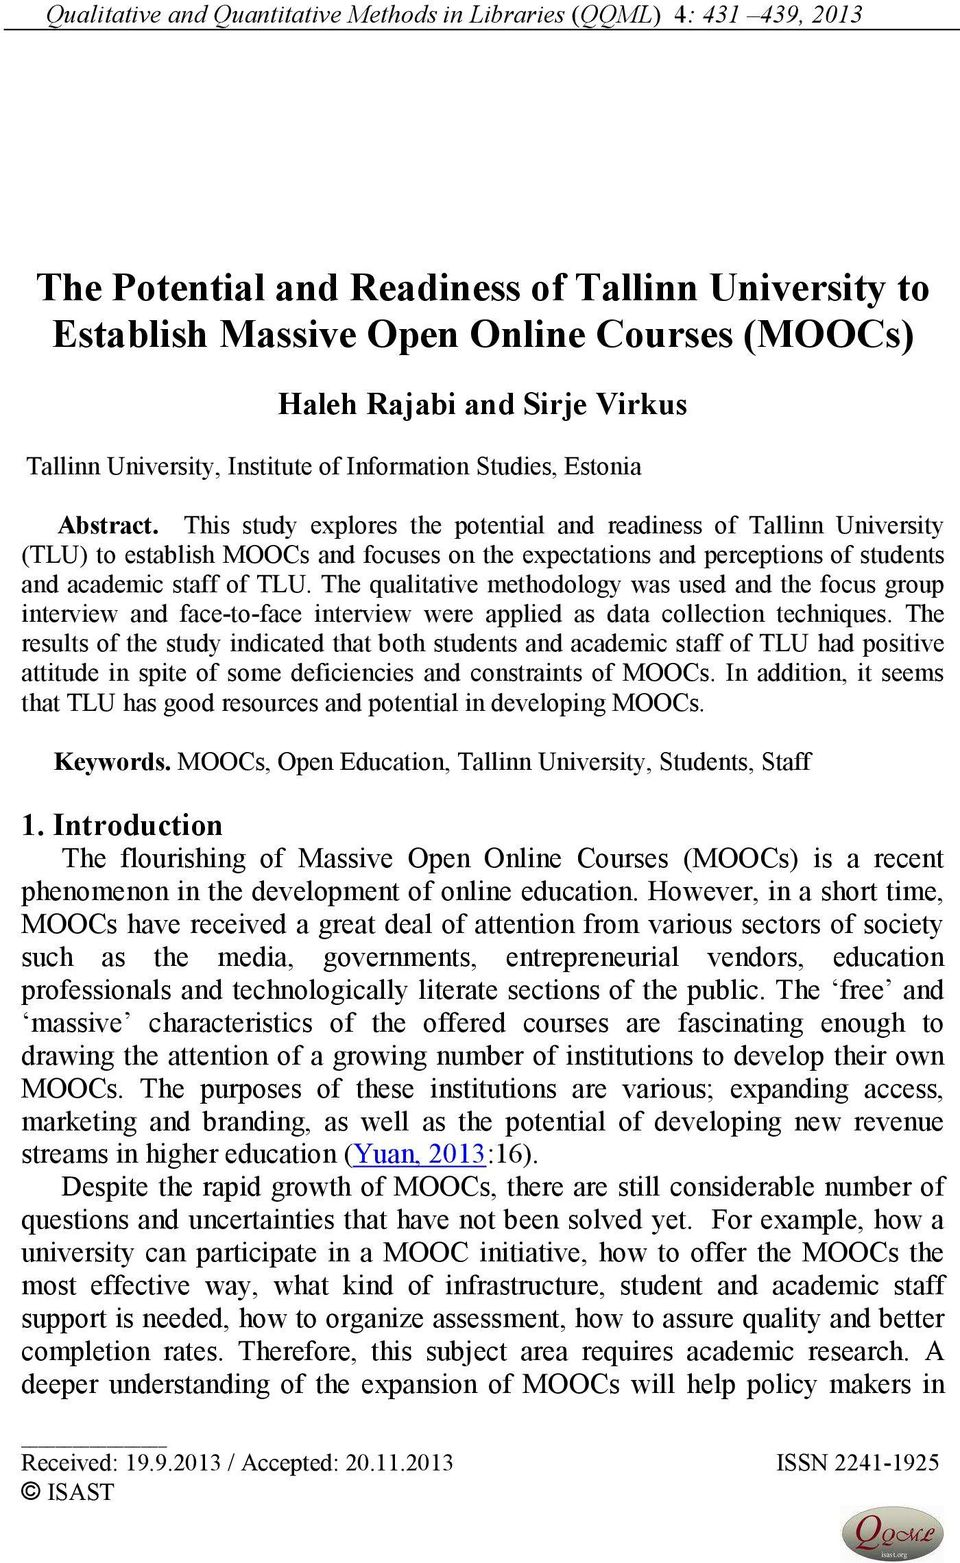 This study explores the potential and readiness of Tallinn University (TLU) to establish MOOCs and focuses on the expectations and perceptions of students and academic staff of TLU.